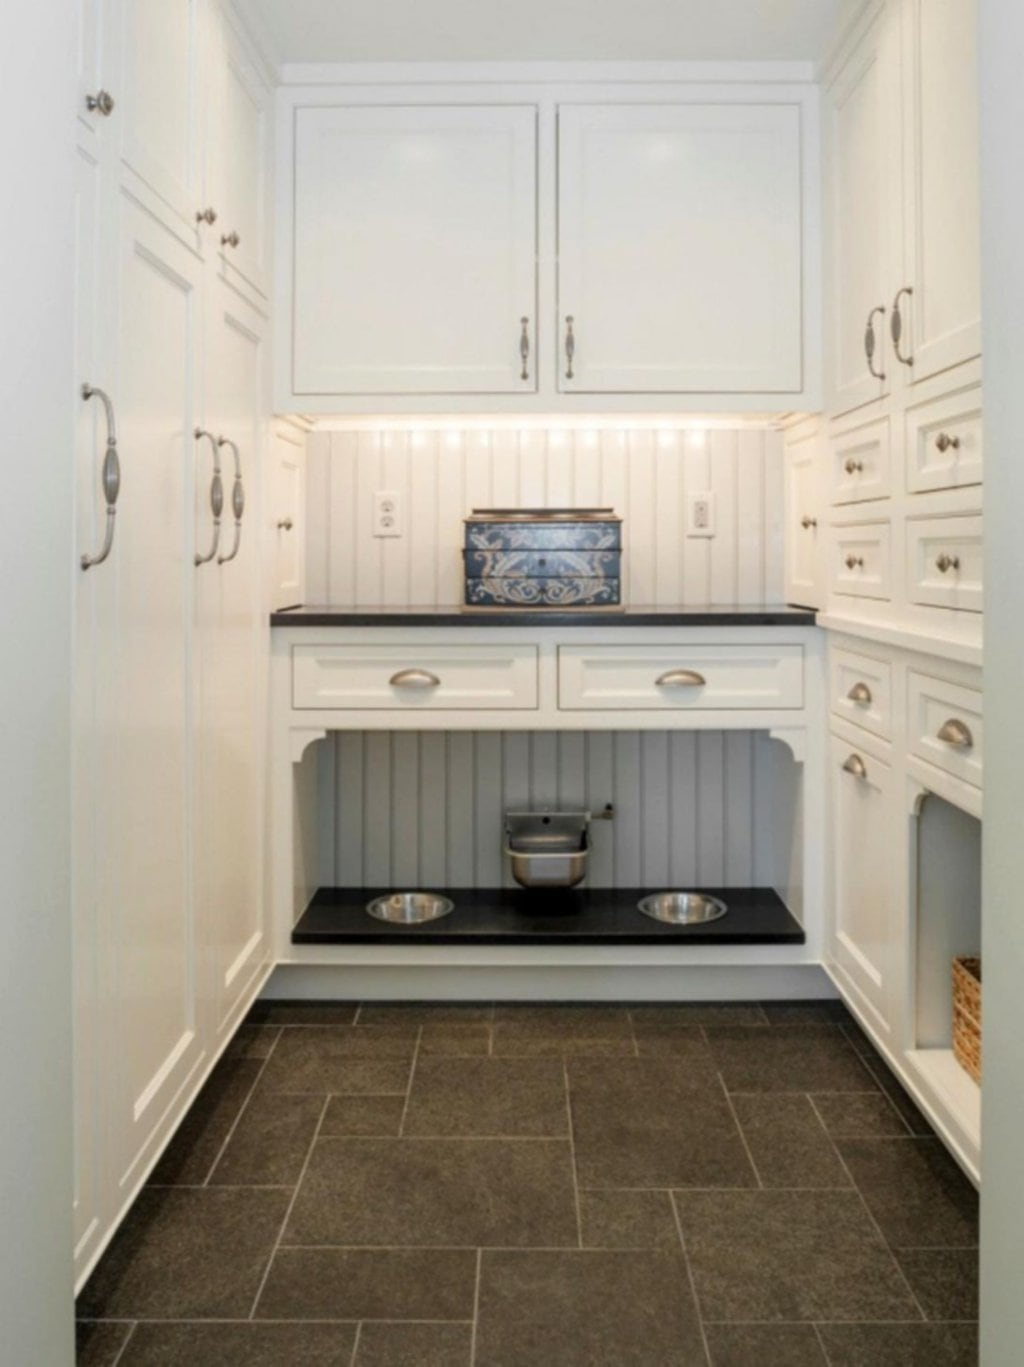 15 Beautiful French Country Kitchen Cabinet White Tips To Choose The Good Small Kitchen Colors